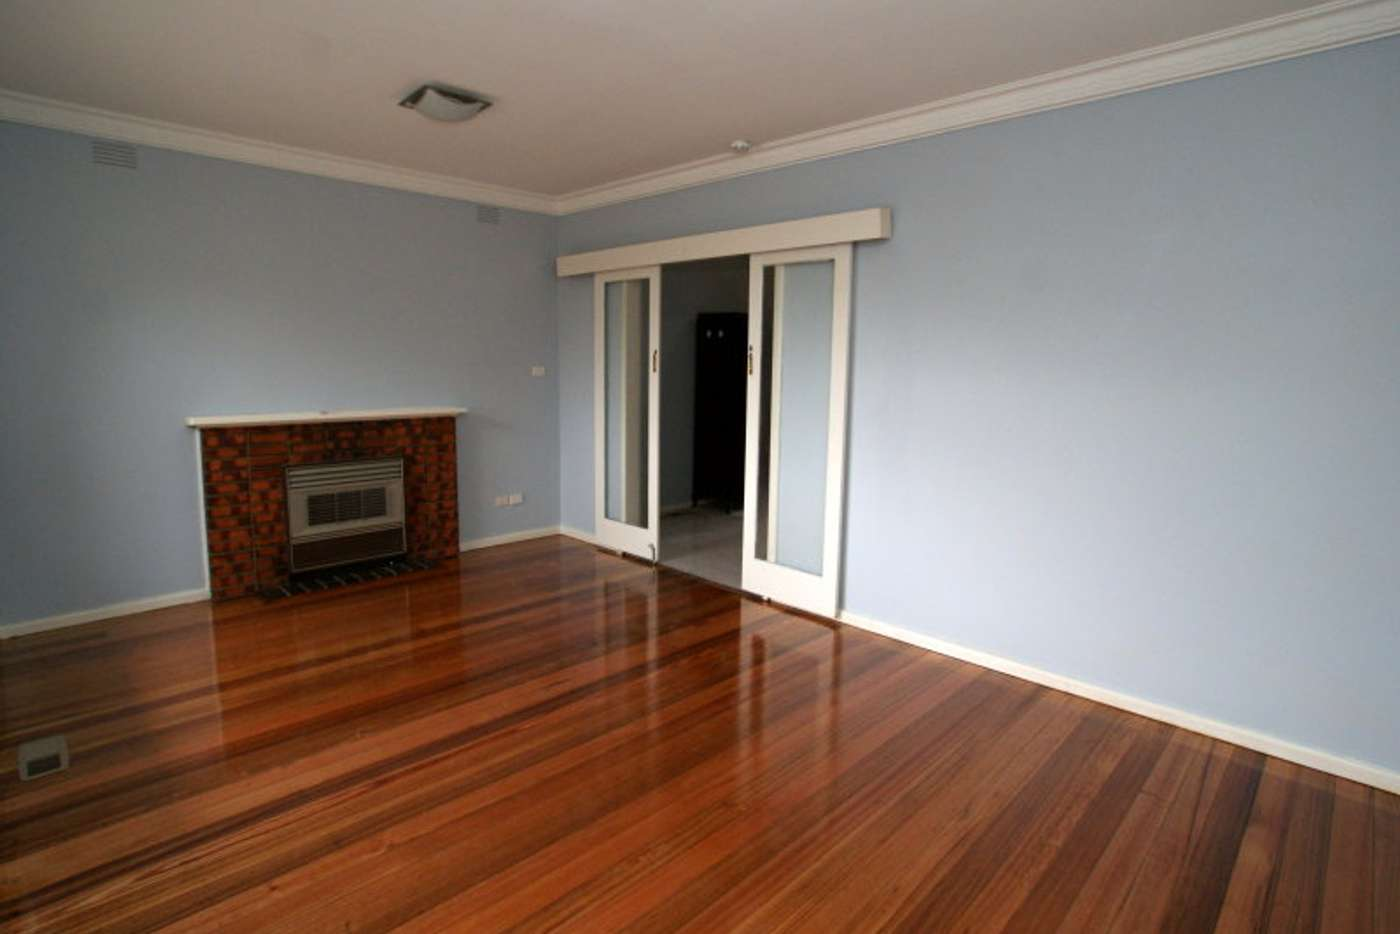 Sixth view of Homely unit listing, 19 Leonie Avenue, Mount Waverley VIC 3149